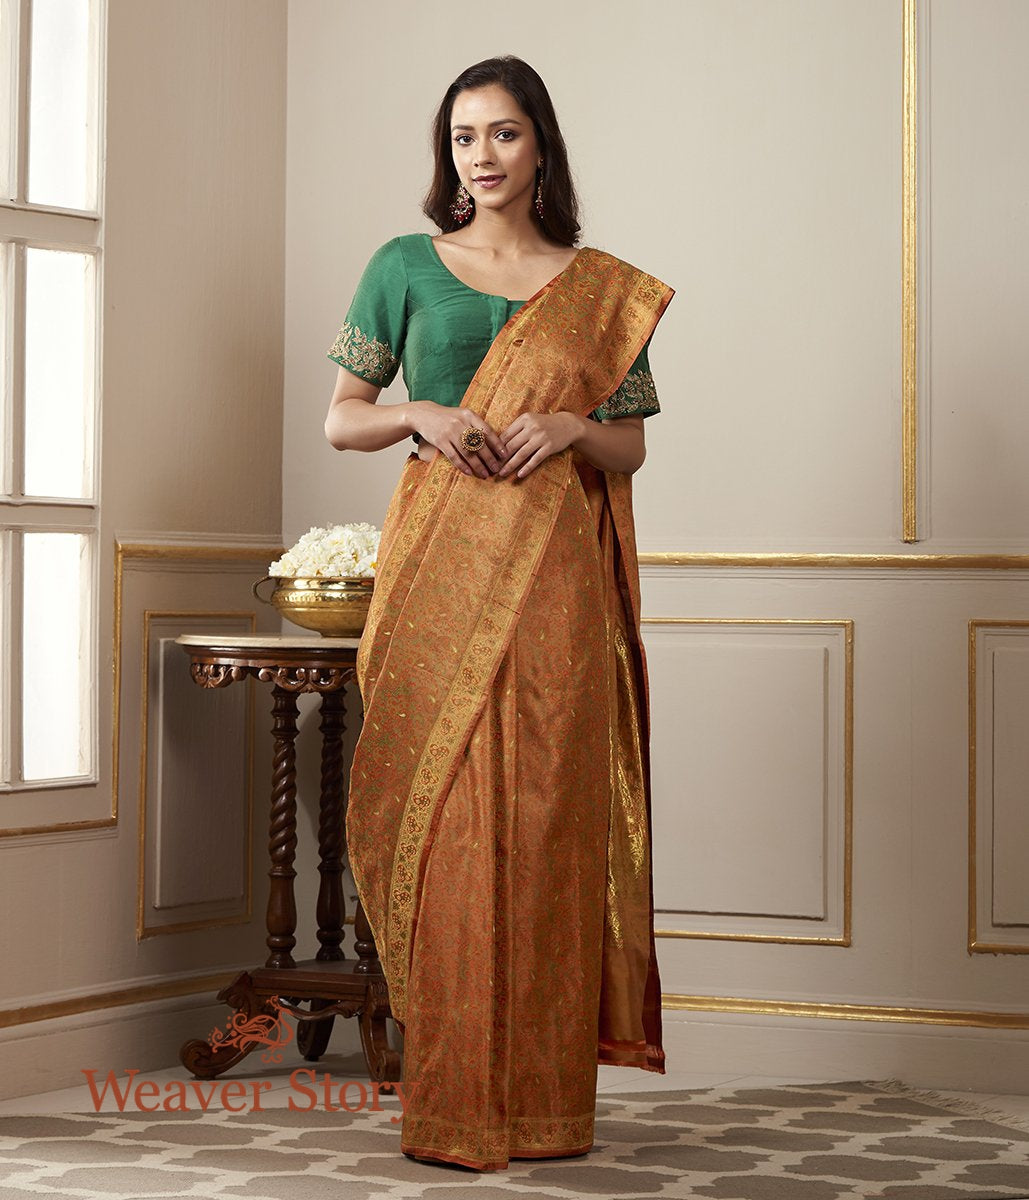 Handwoven Mustard Tanchoi Jamawar Saree with Zari Woven Paisleys